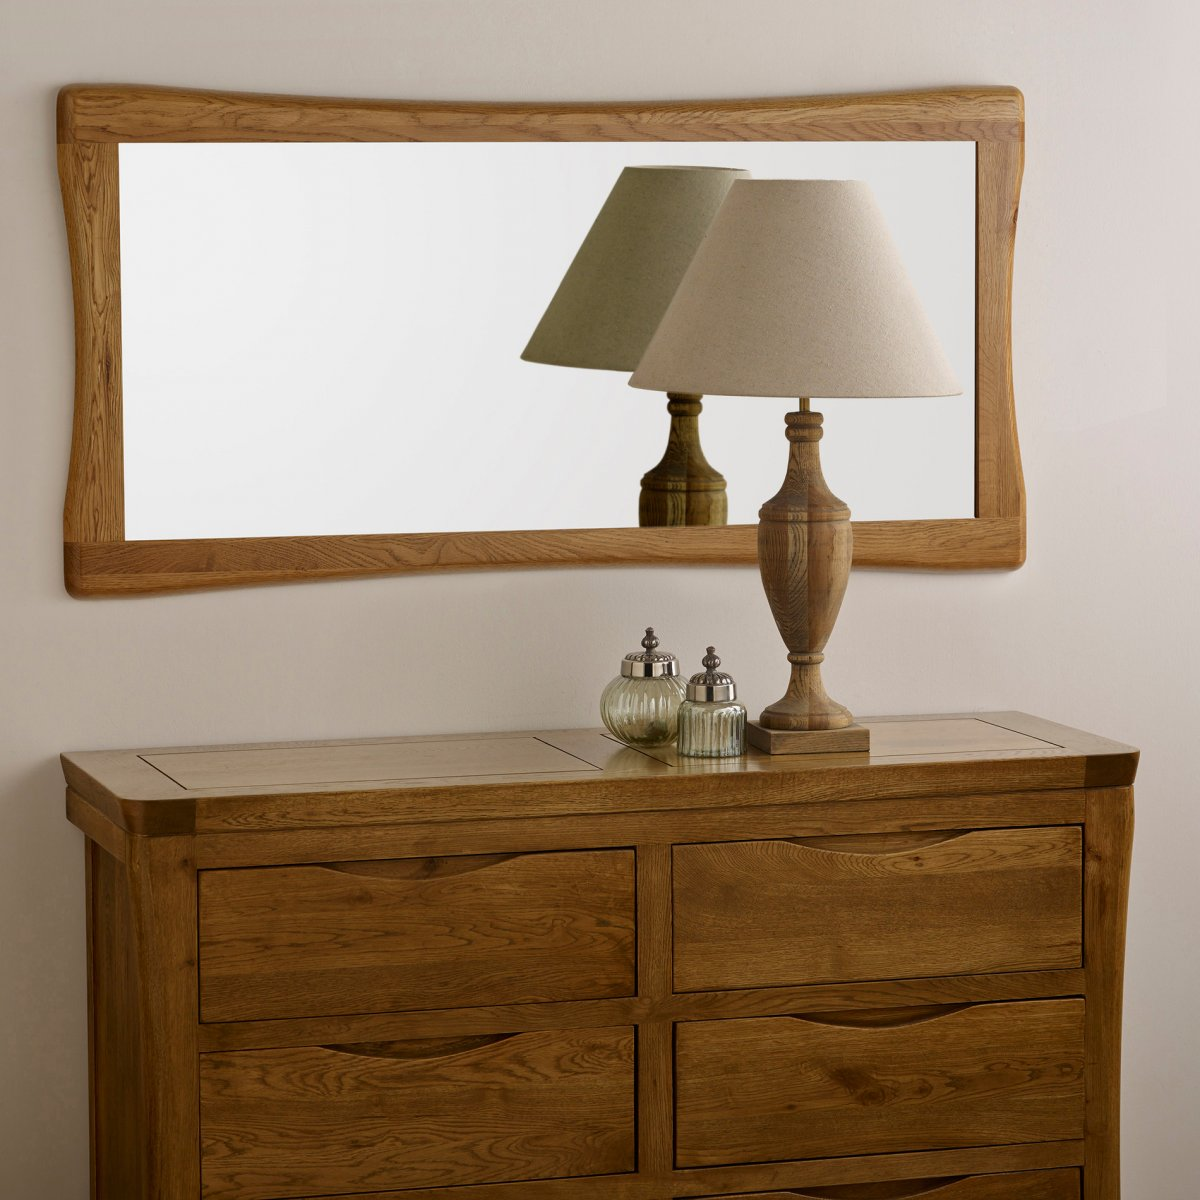 Orrick wall mirror in natural solid oak oak furniture land product information amipublicfo Choice Image